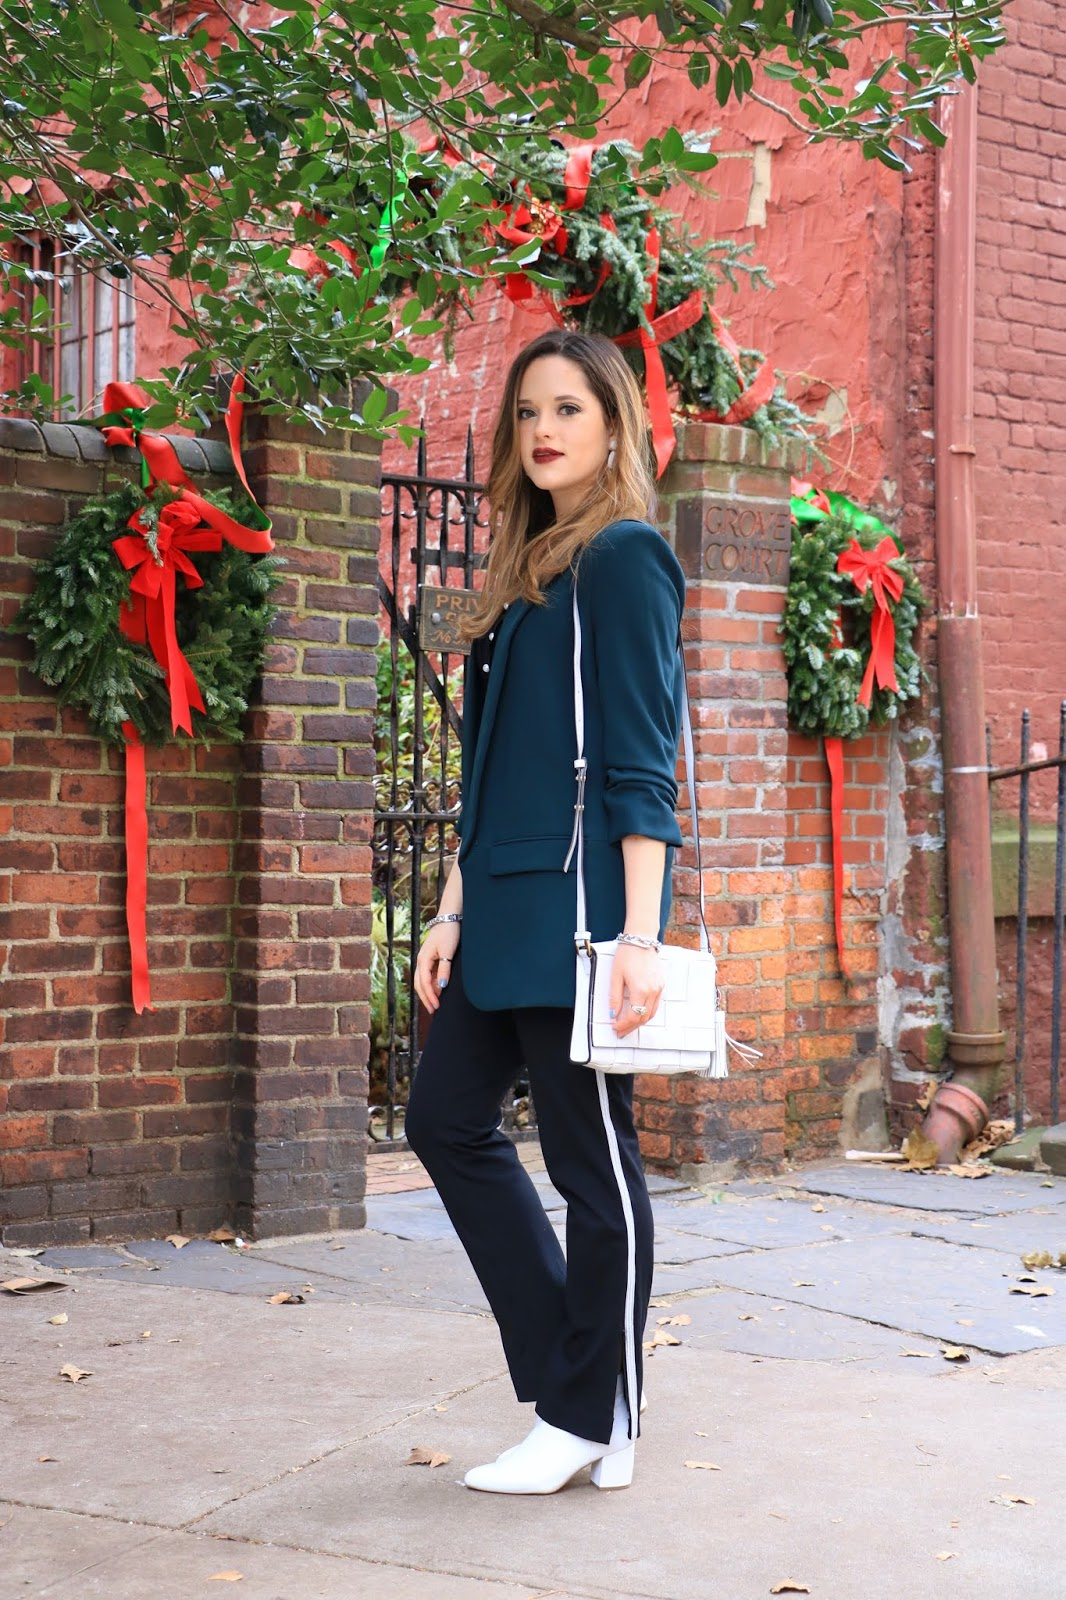 Nyc fashion blogger Kathleen Harper's holiday party outfit with pants